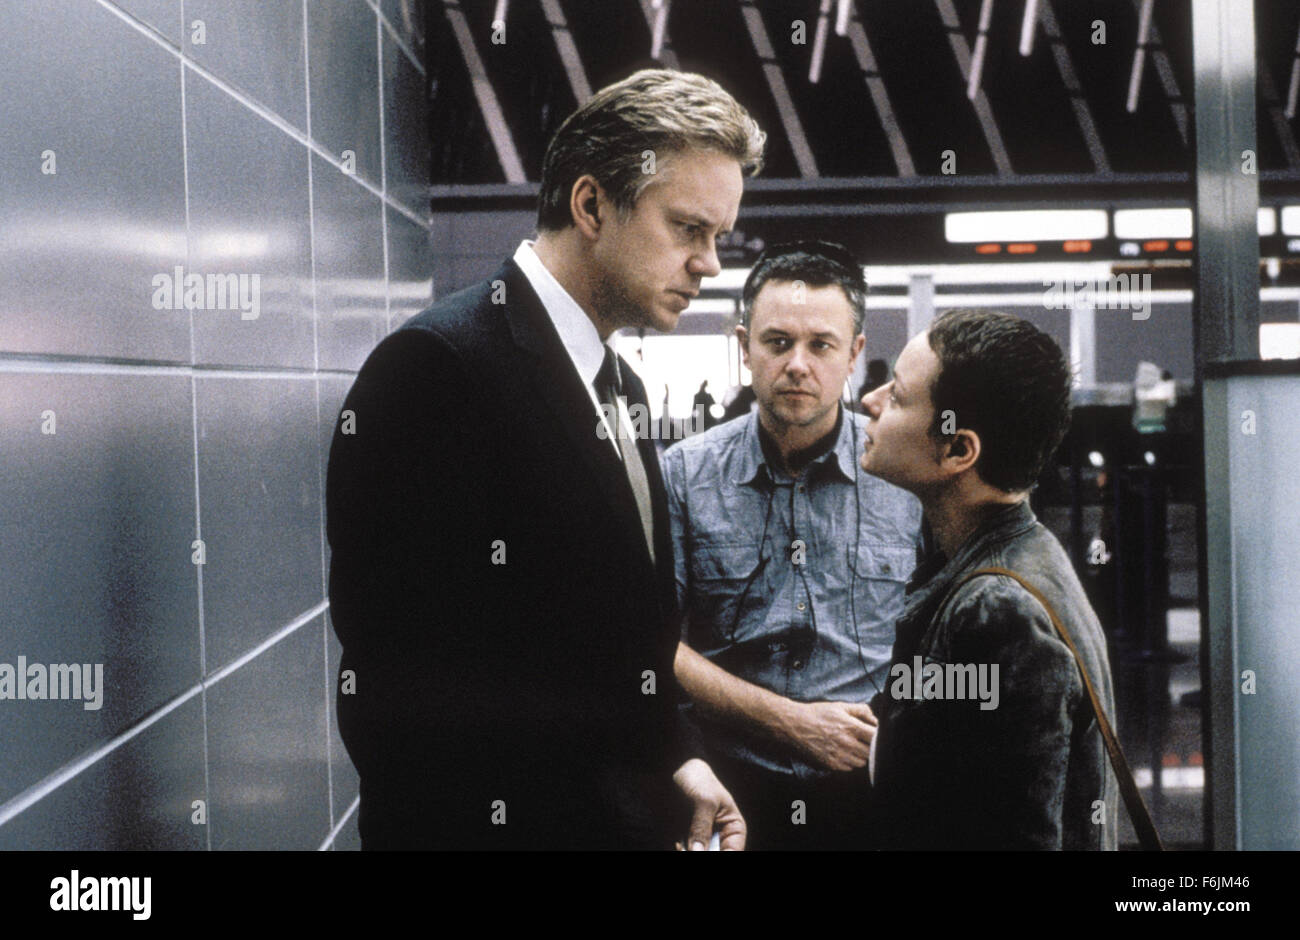 RELEASE DATE: August 6, 2004. MOVIE TITLE: Code 46. STUDIO: Revolution Films. PLOT: Code 46 is a love story set Stock Photo